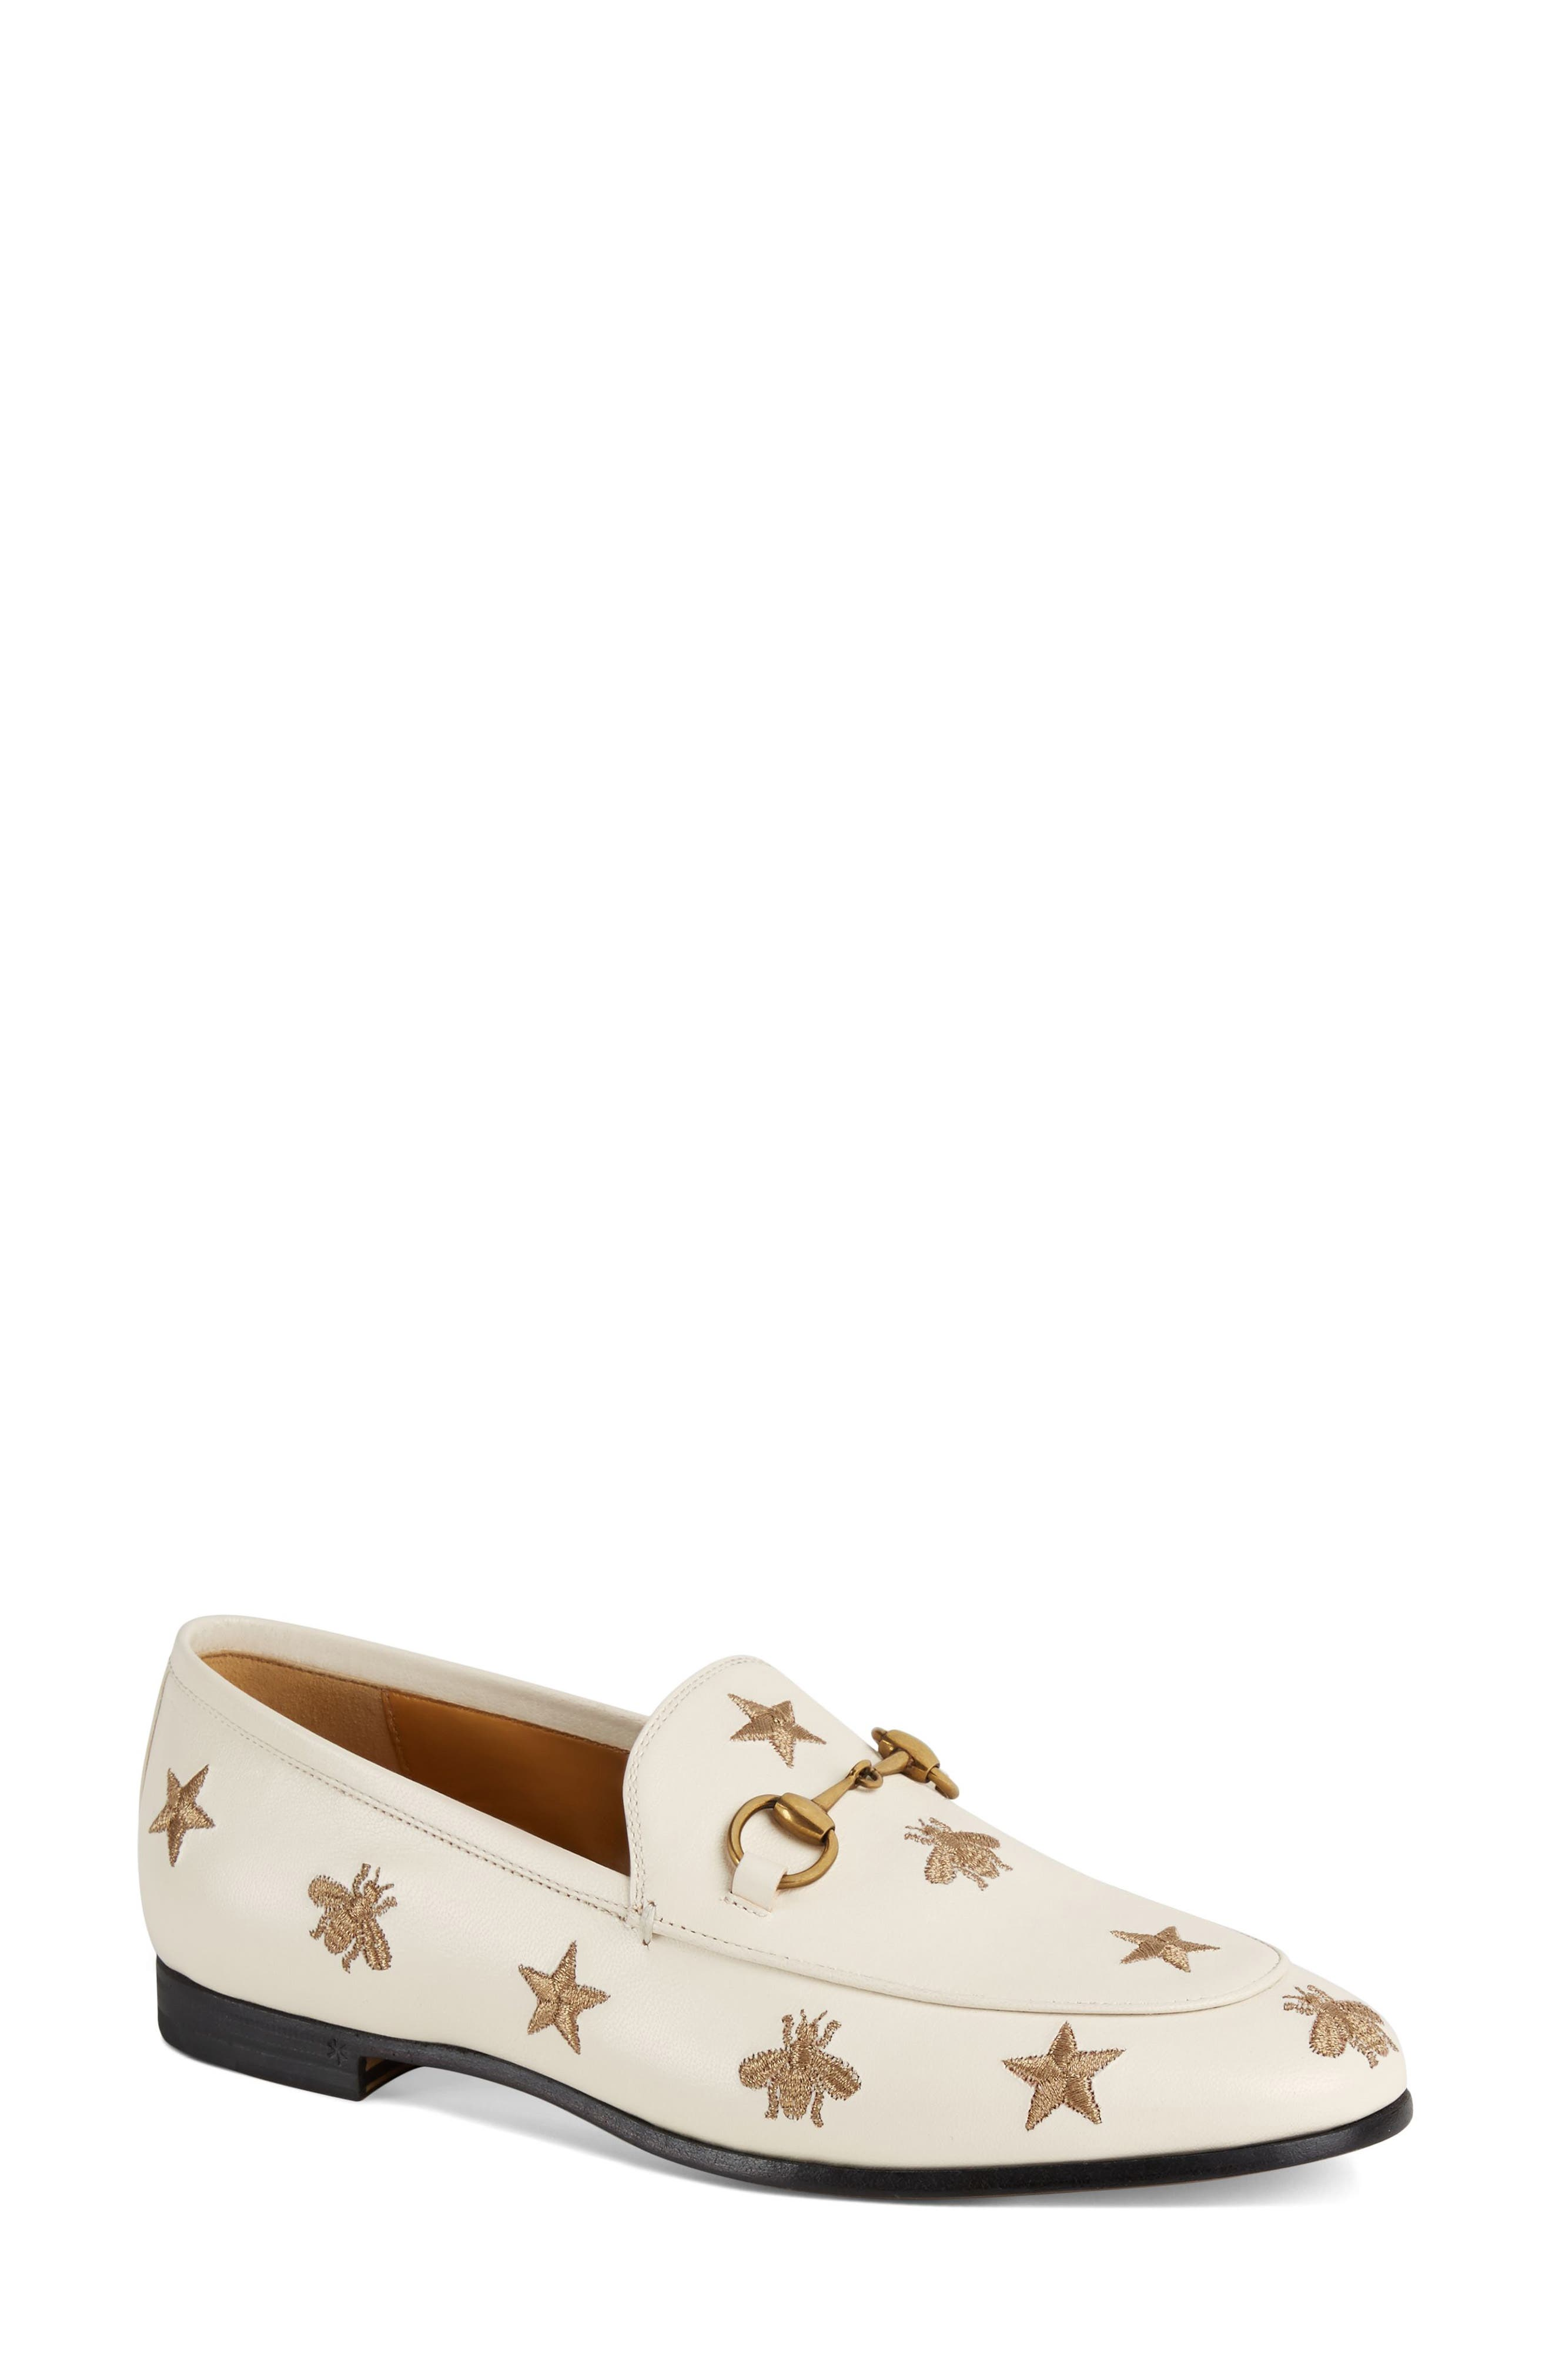 Jordaan Embroidered Bee Loafer,                             Main thumbnail 1, color,                             Mystic White